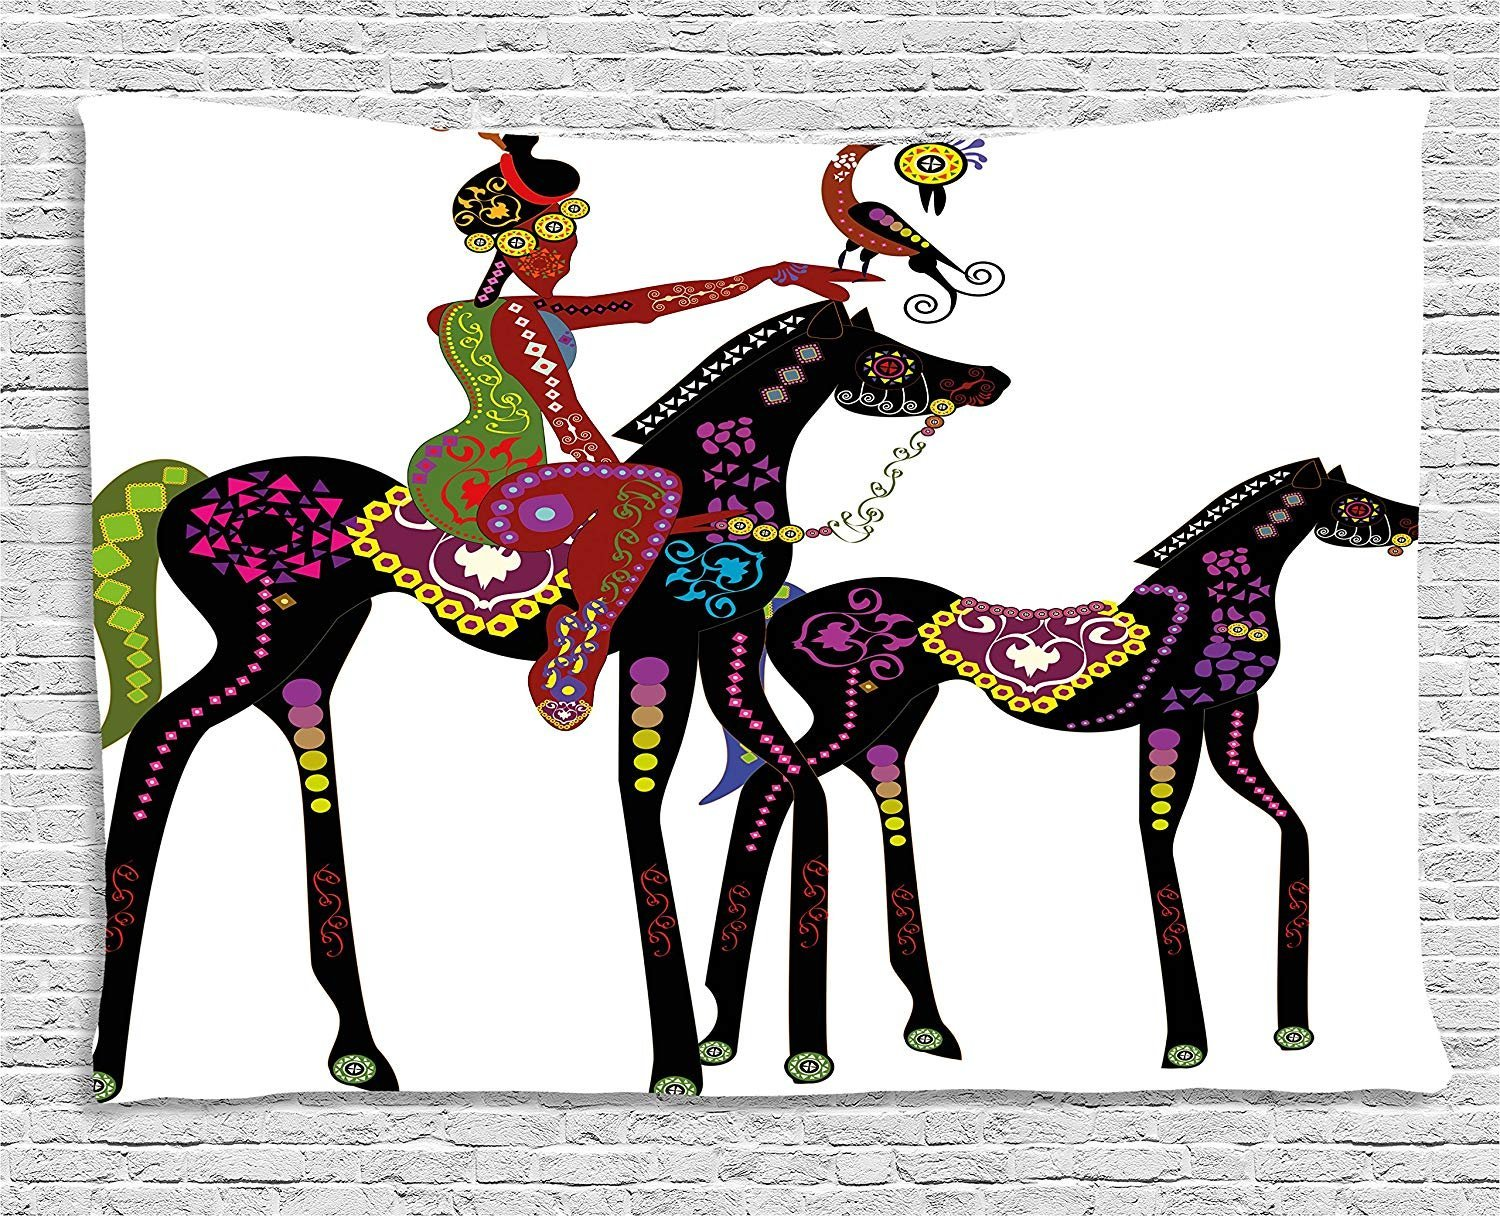 XHFITCLtd Ethnic Tapestry, Abstract Ancient Tribal Design of a Woman on a Horse with a Bird Animal Fun Image, Wall Hanging for Bedroom Living Room Dorm, 80 W X 60 L Inches, Multicolor